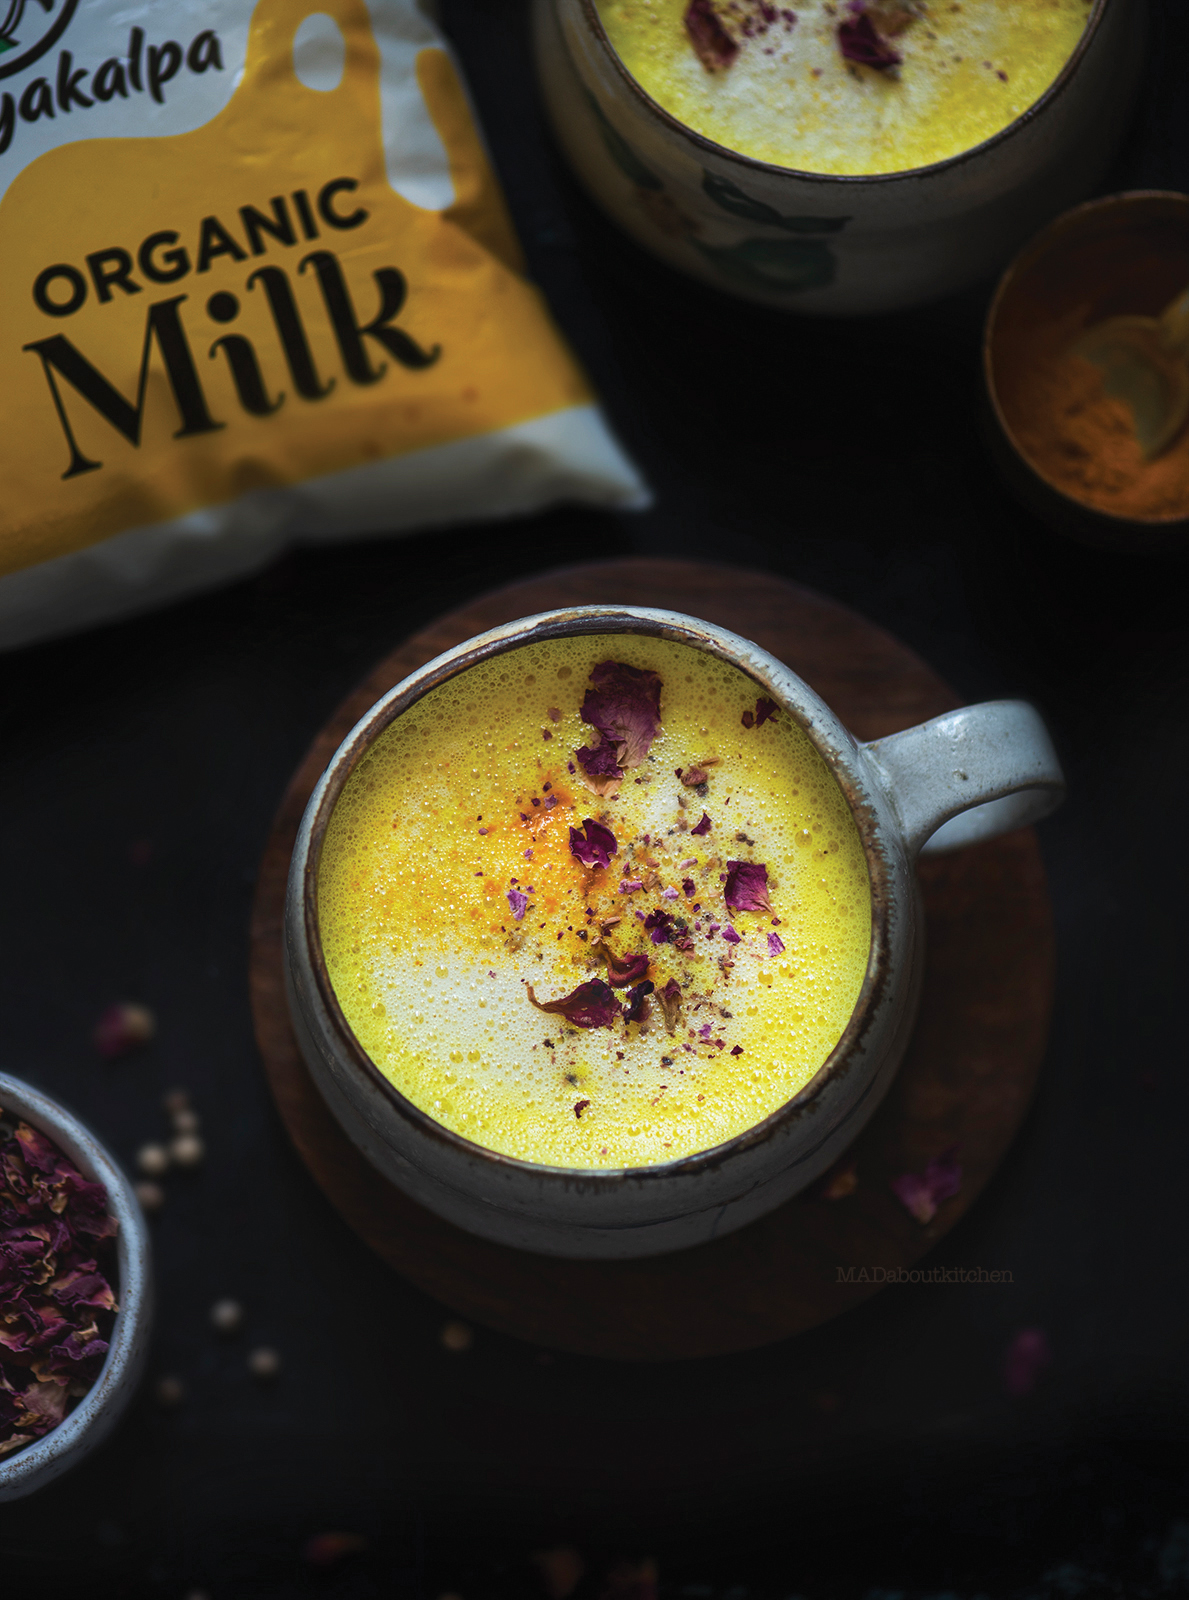 Haldiwaala doodh, the immuintiy booster drink now globally famous as Golden milk, Turmeric latte is one of our go to drink of every household in India.